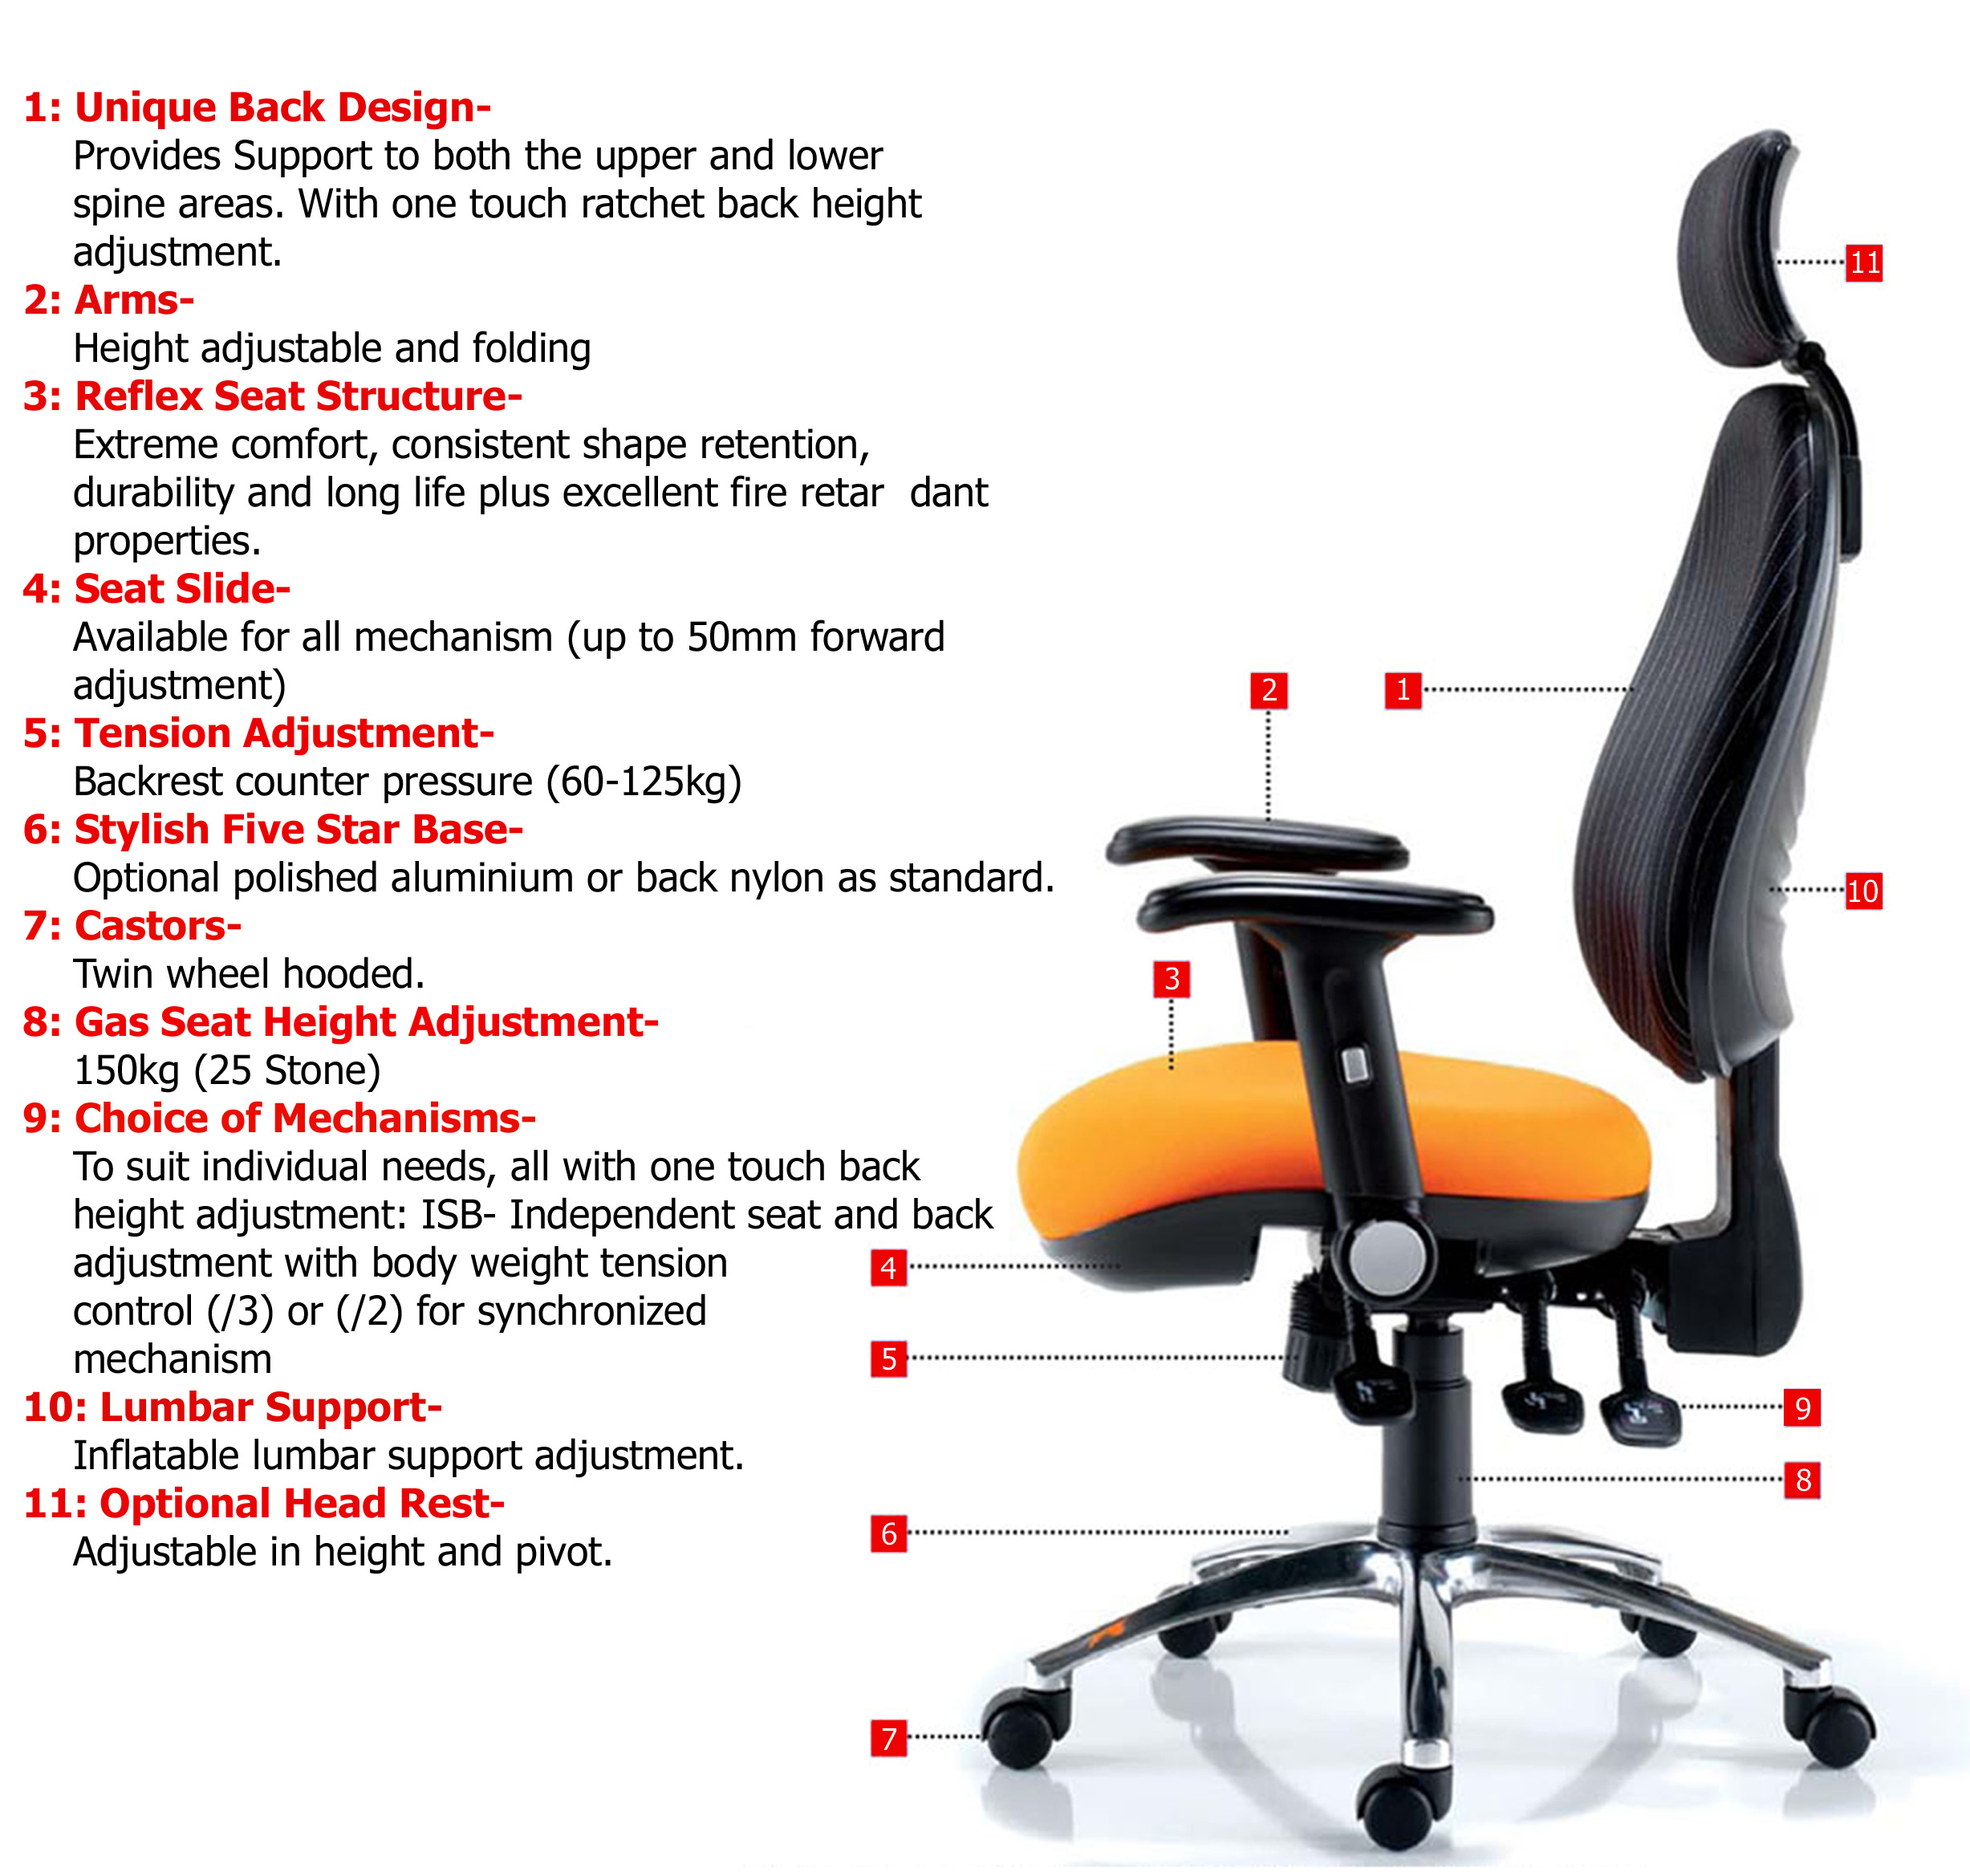 Ergonomic_Chair_Benefits